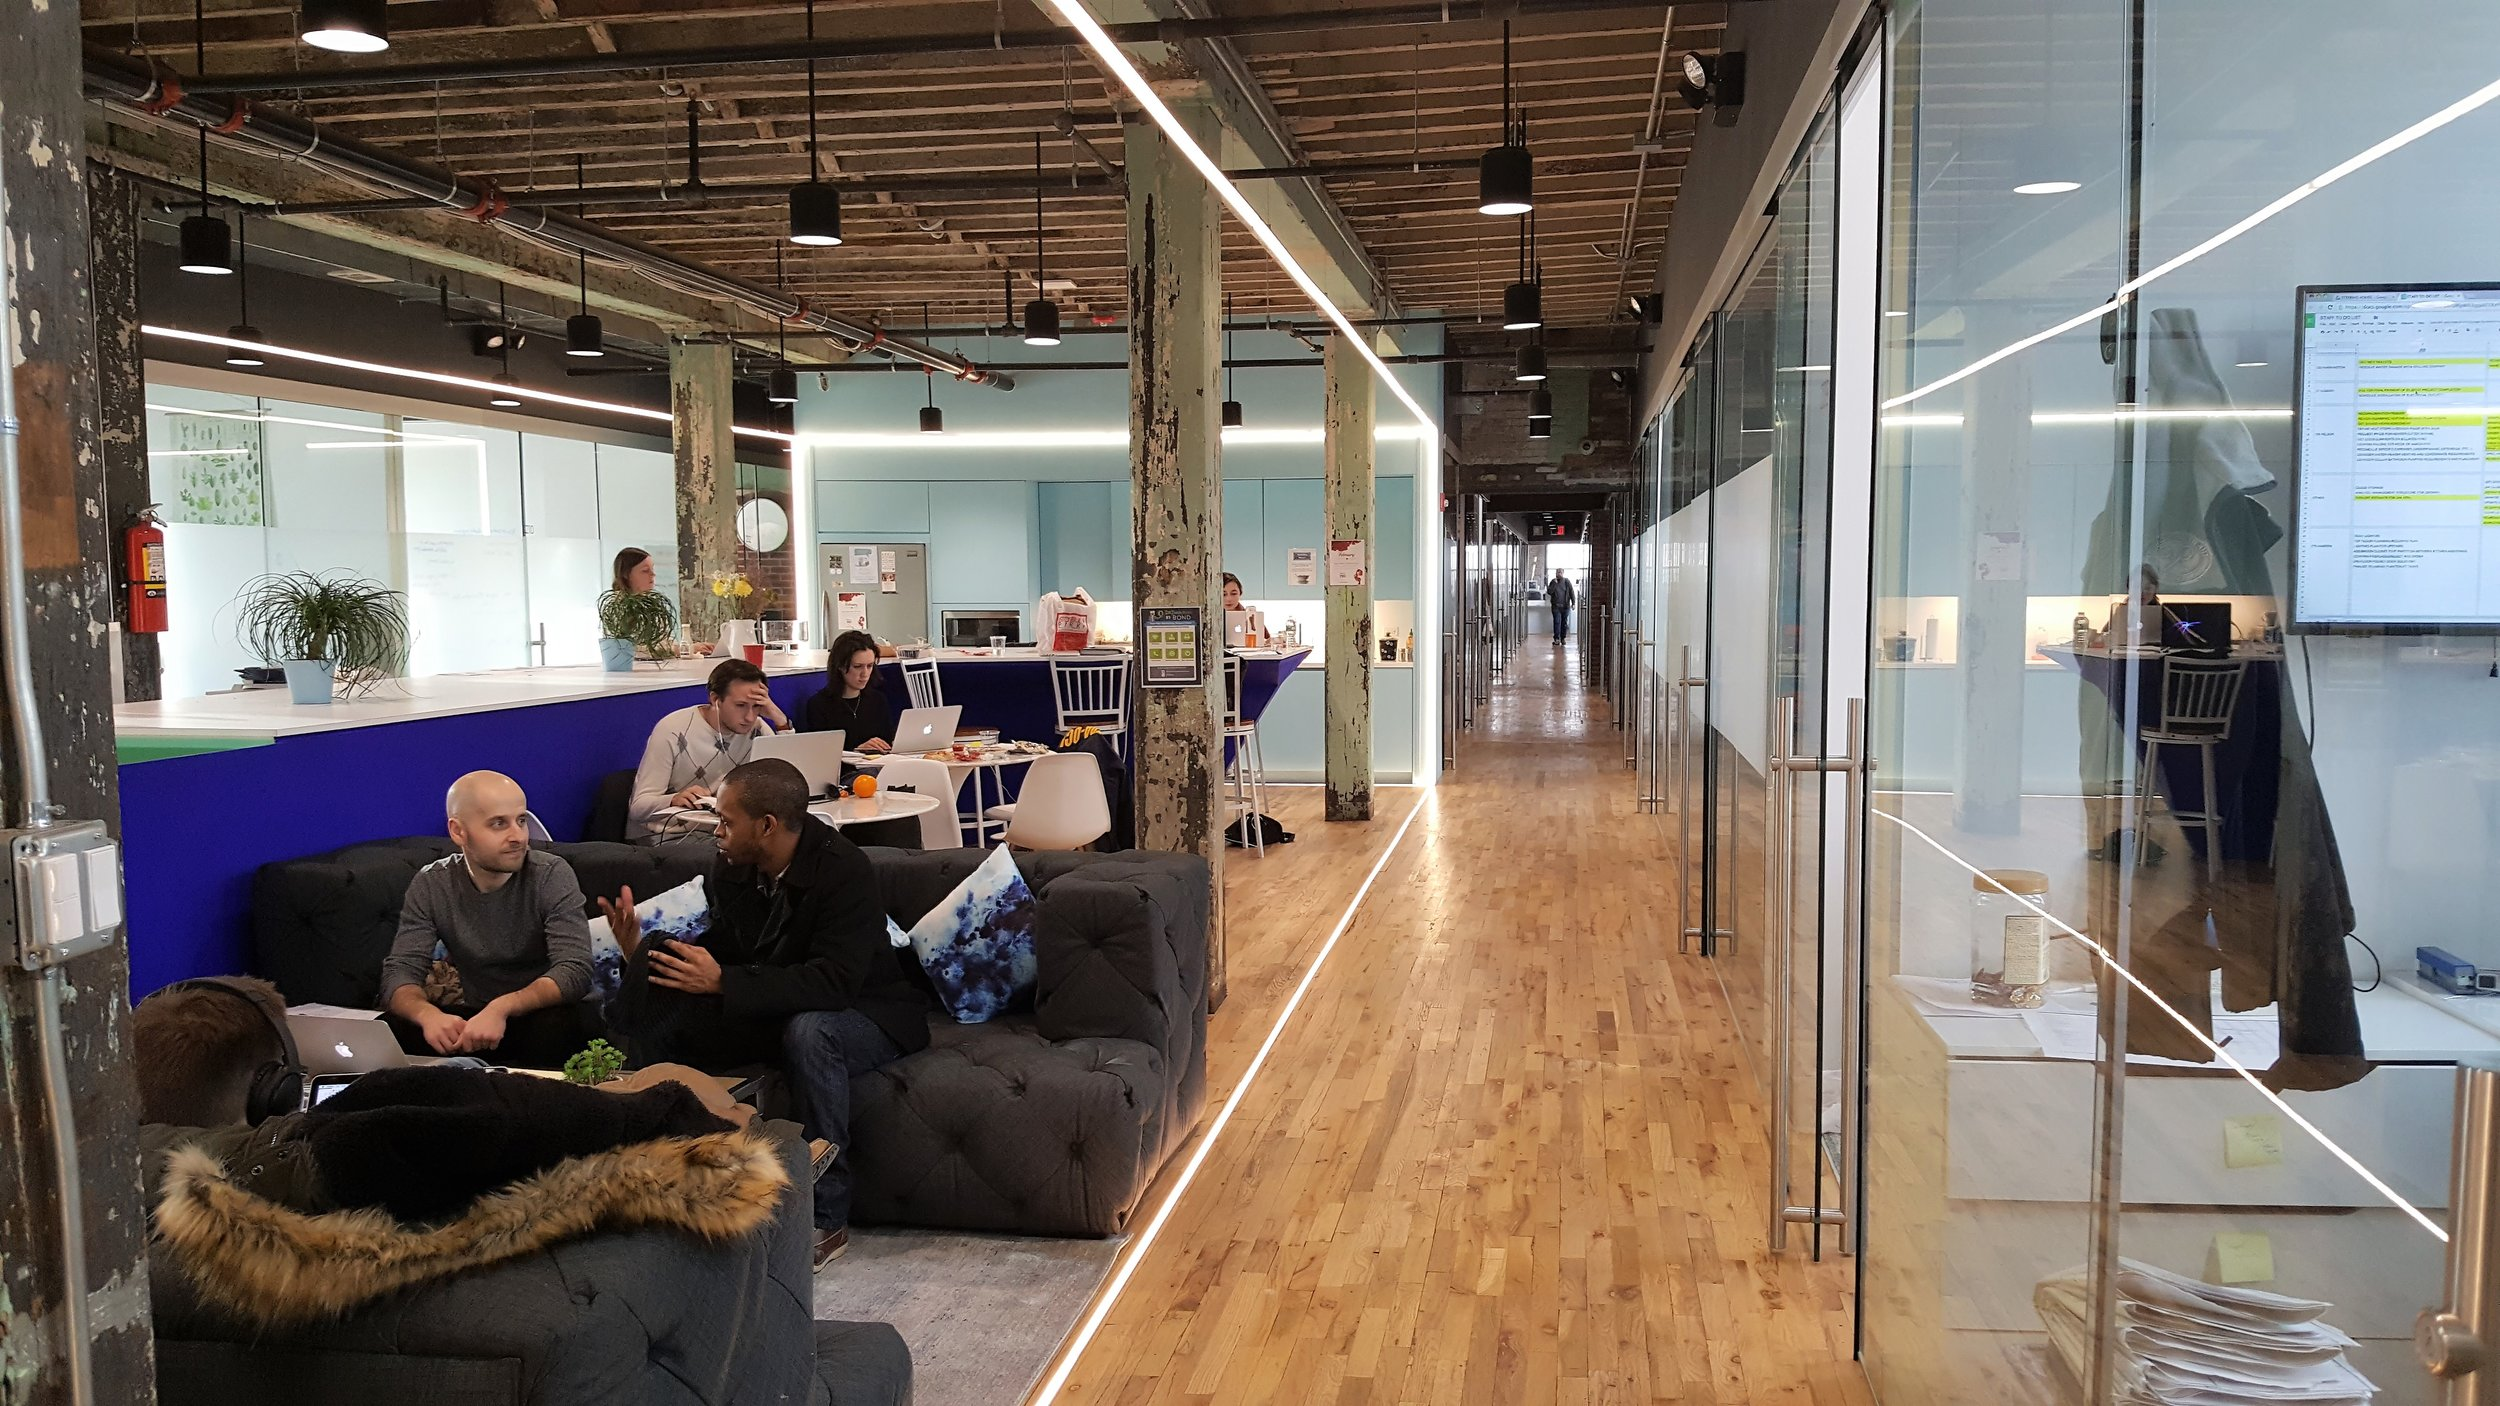 HAS CO-WORKING GONE CORPORATE? A DOZEN REASONS WHY THE ANSWER IS ABSOLUTELY! - A friend moves his company offices to a coworking space, mirroring a growing trend.